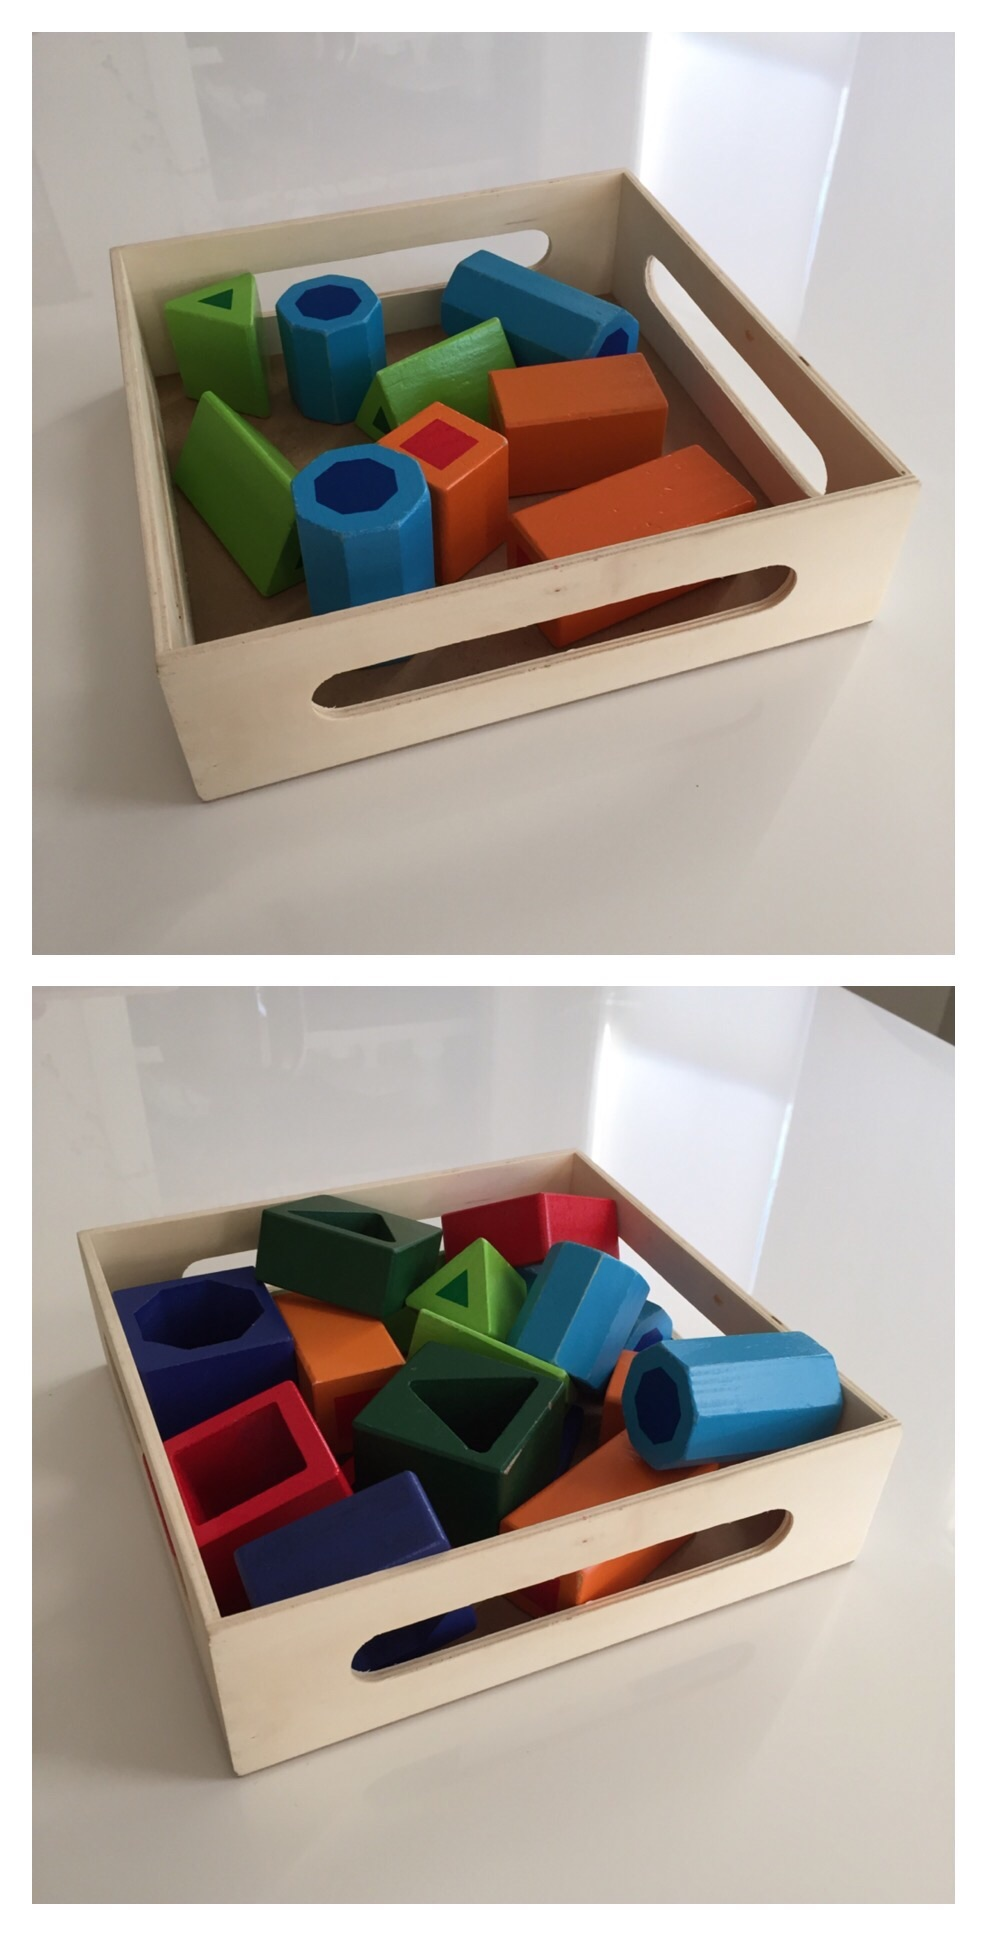 Put some or all of the pieces into a basket or tray and it becomes a really cool set of blocks - completely open ended (and appropriate for a child up to age 5).